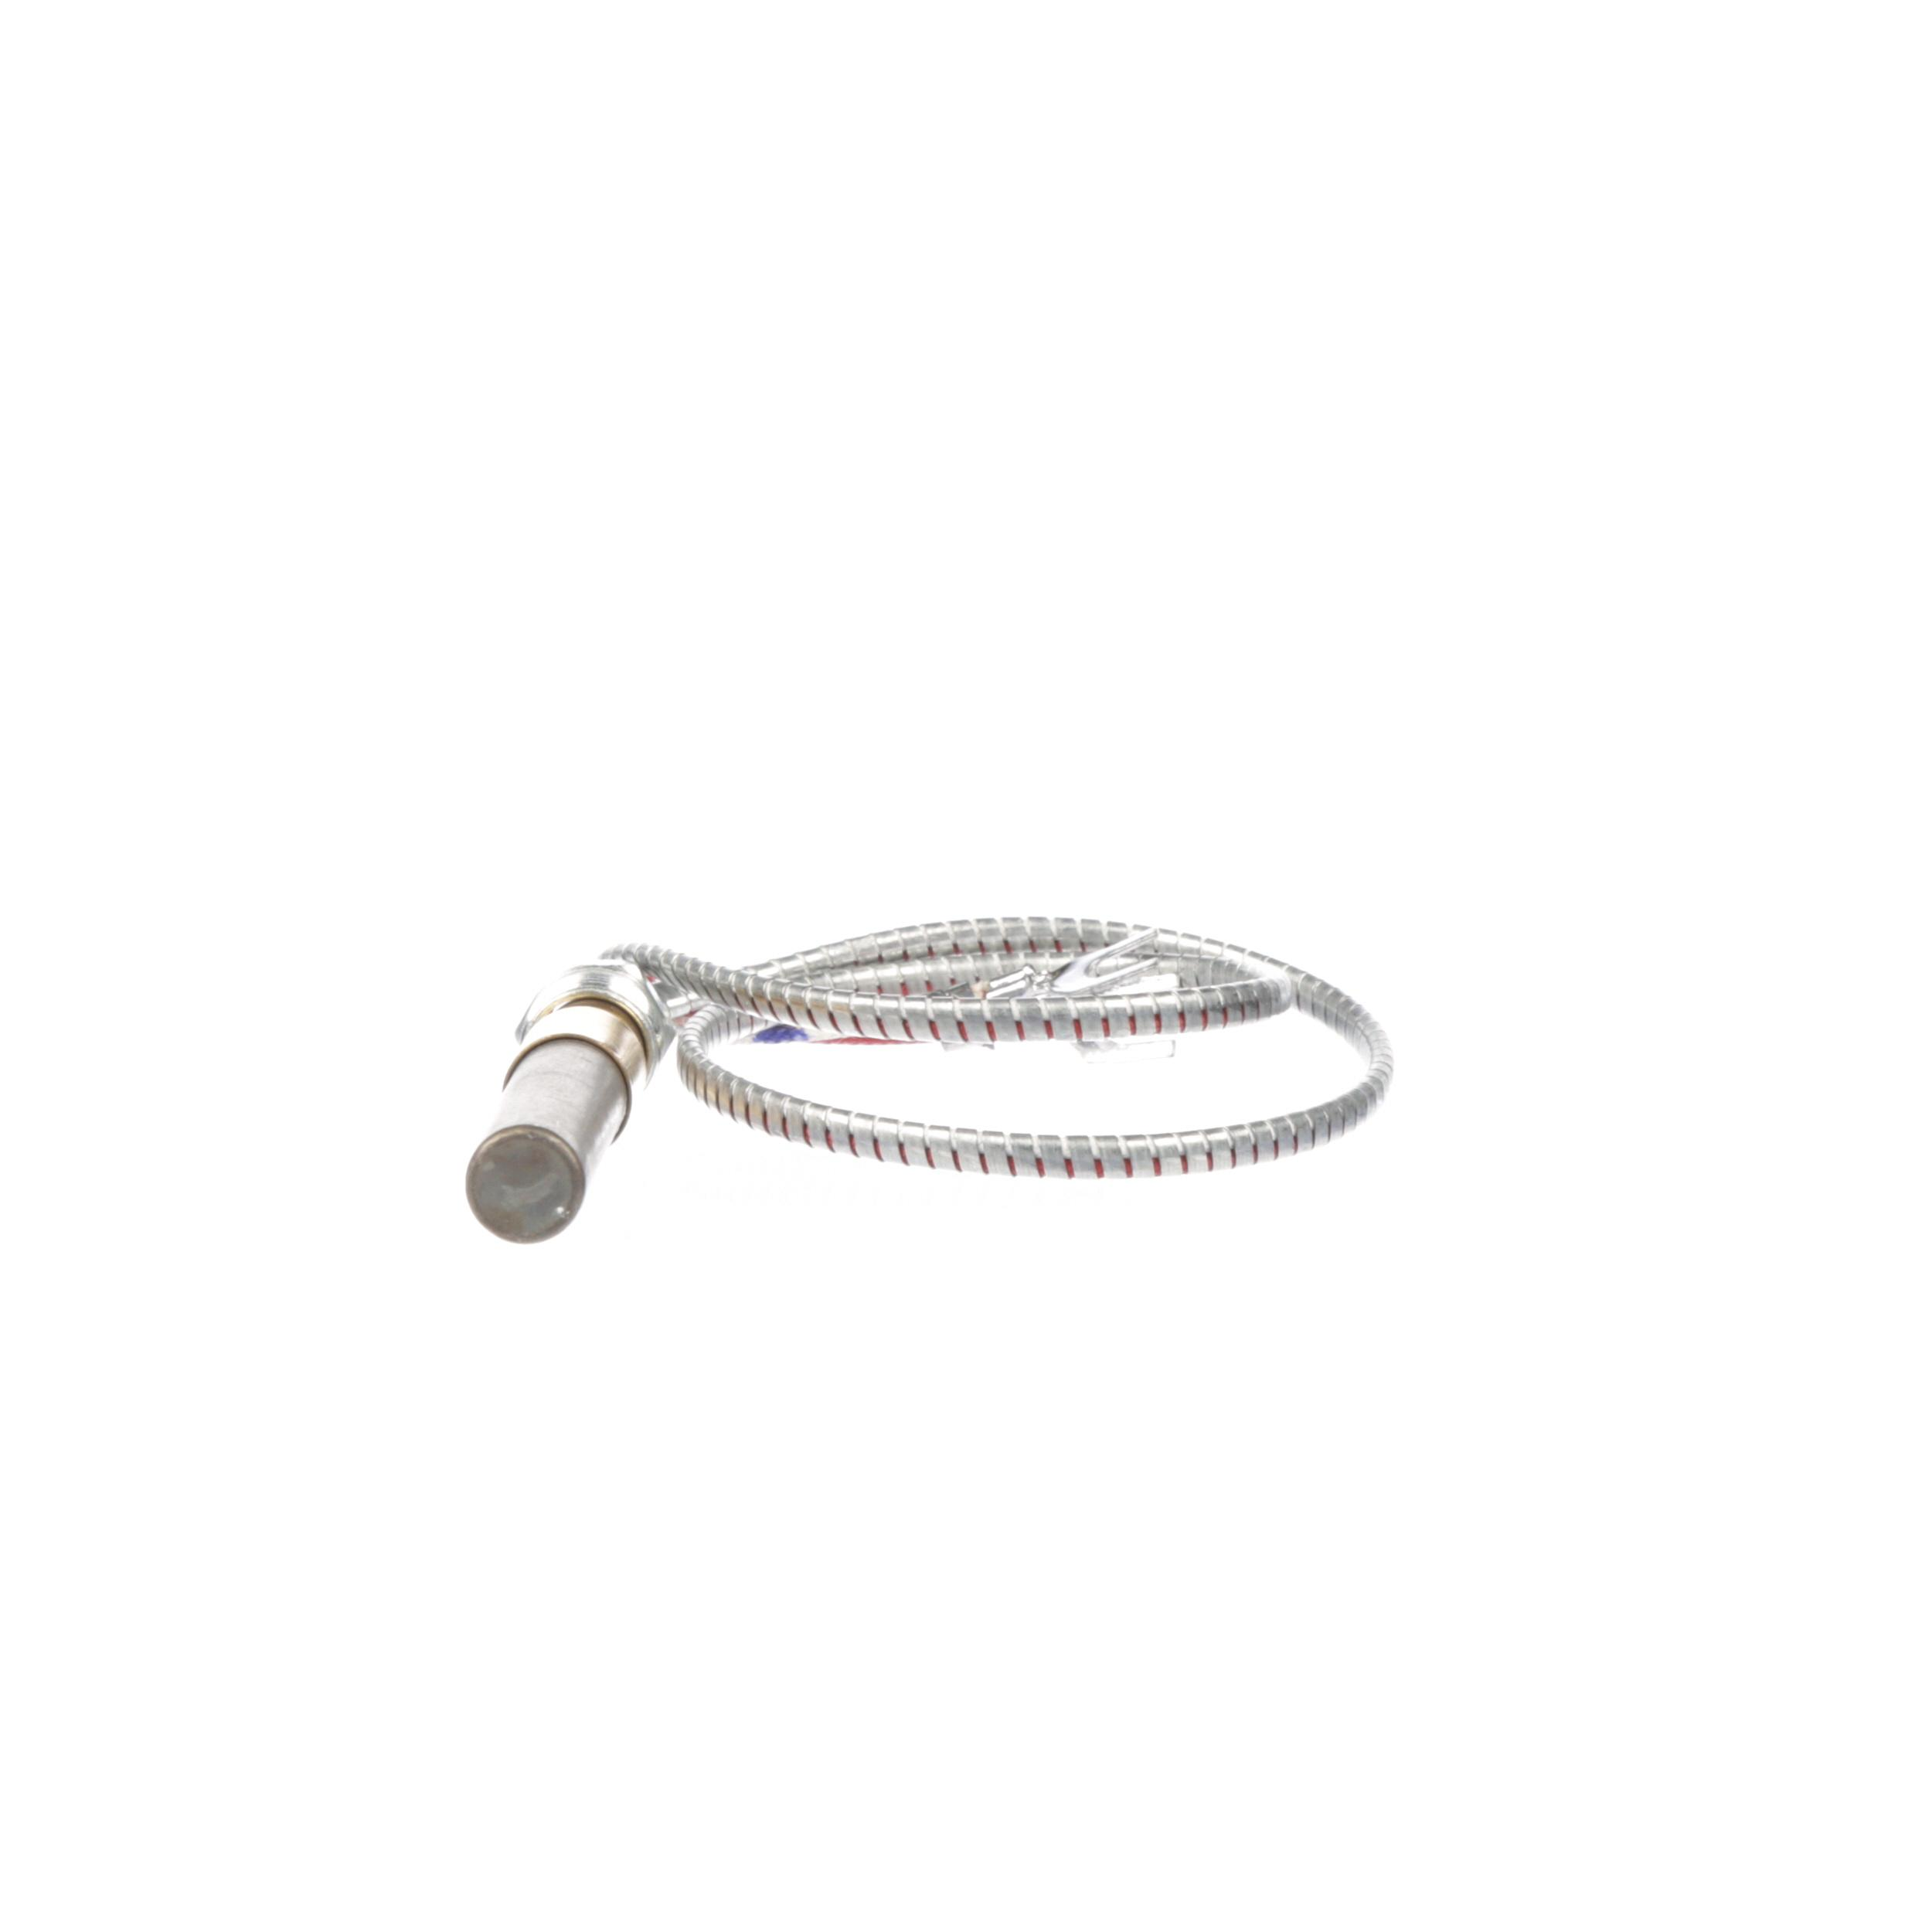 PITCO THERMOPILE SOLSTICE